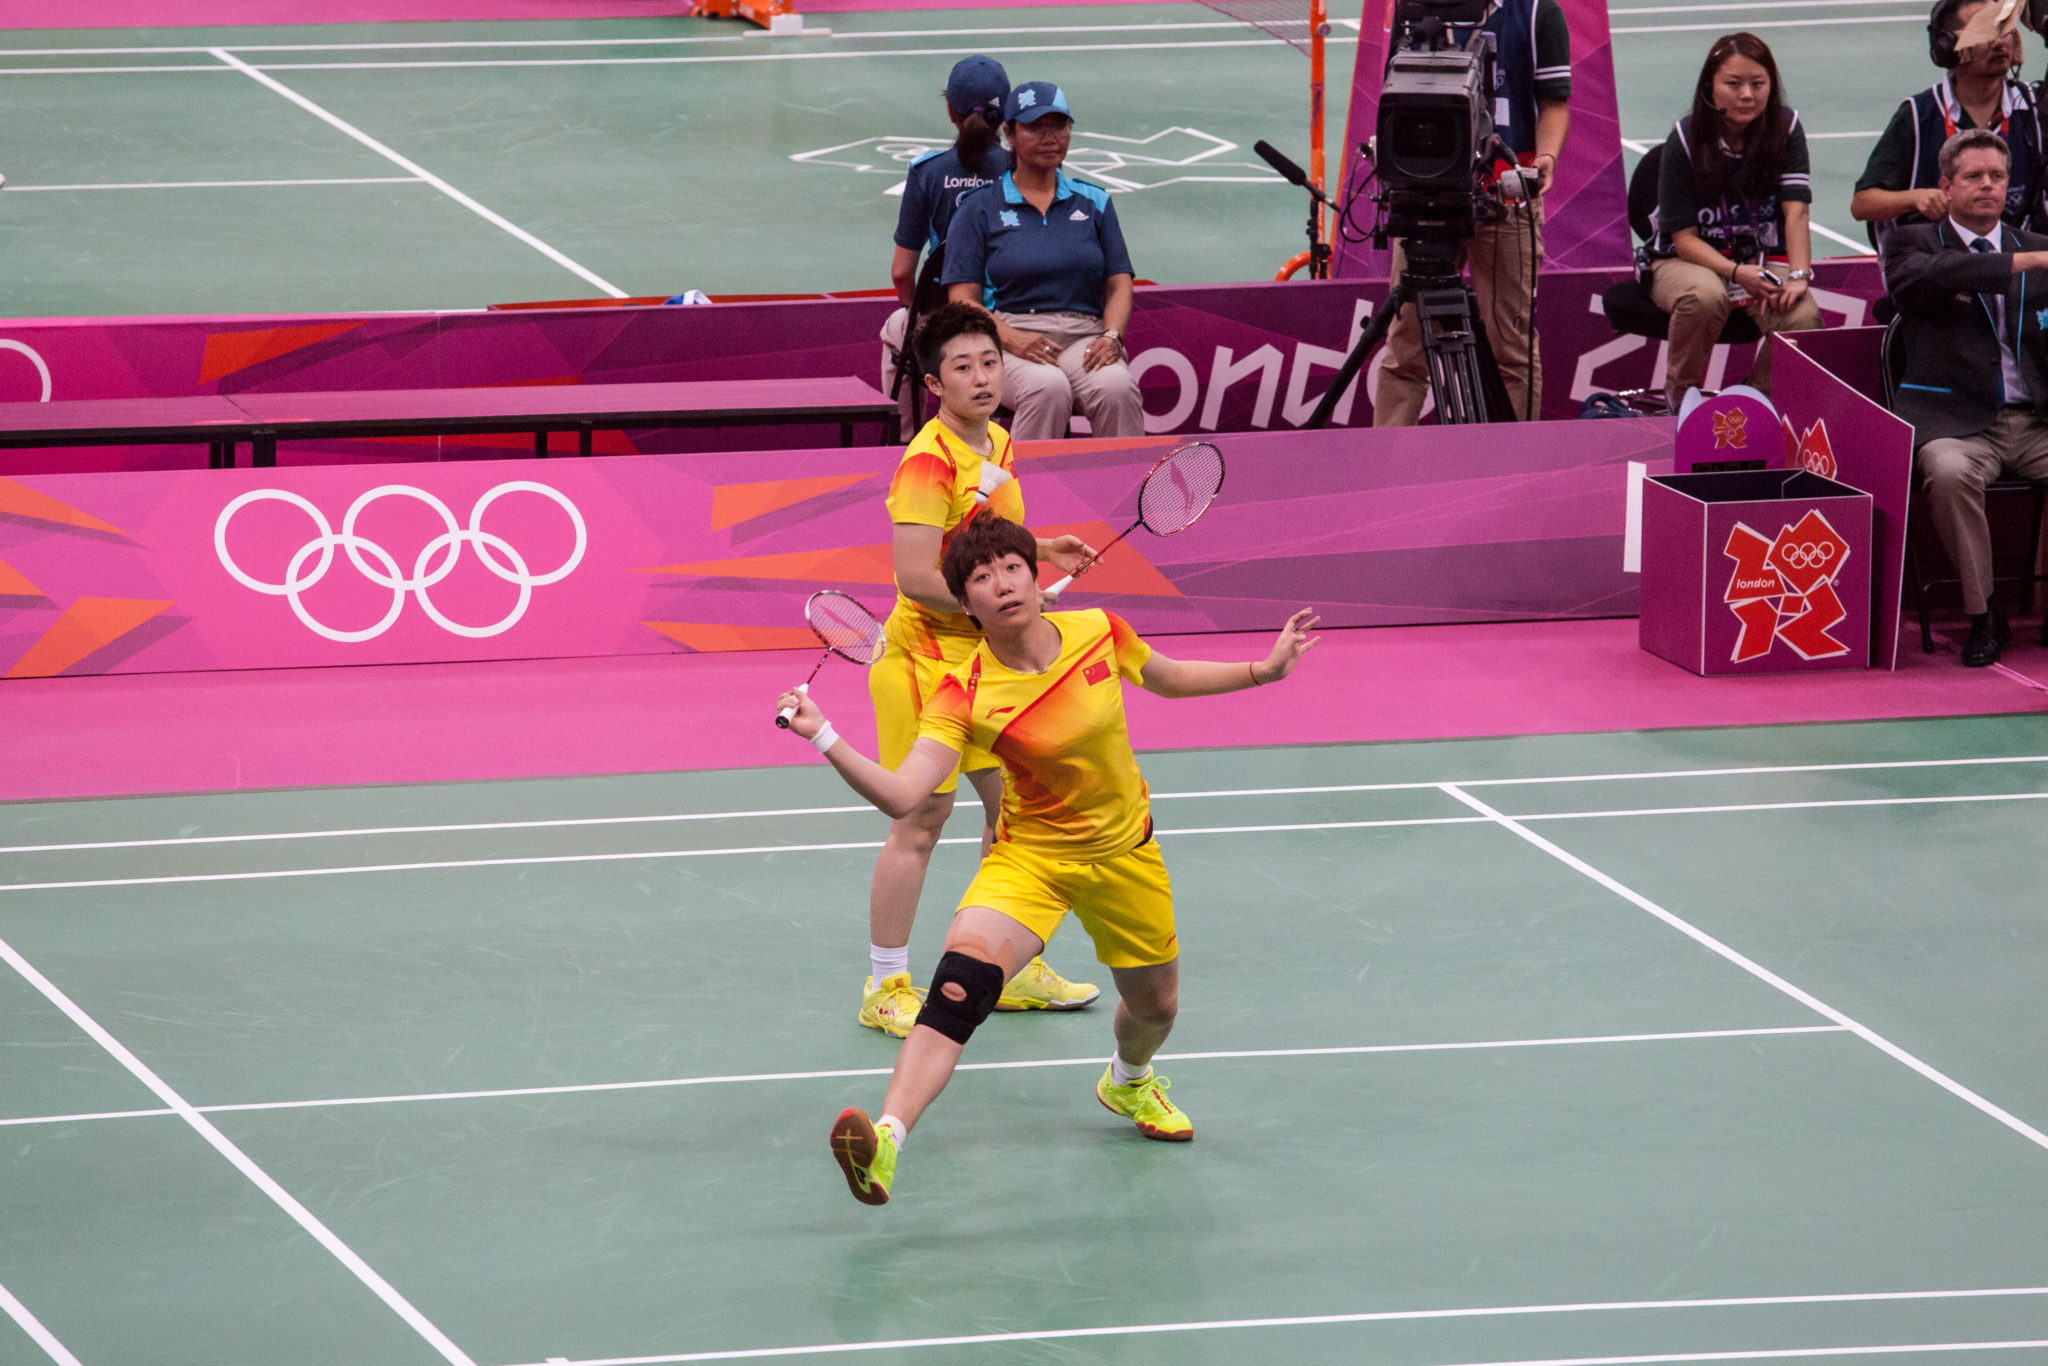 best badminton players